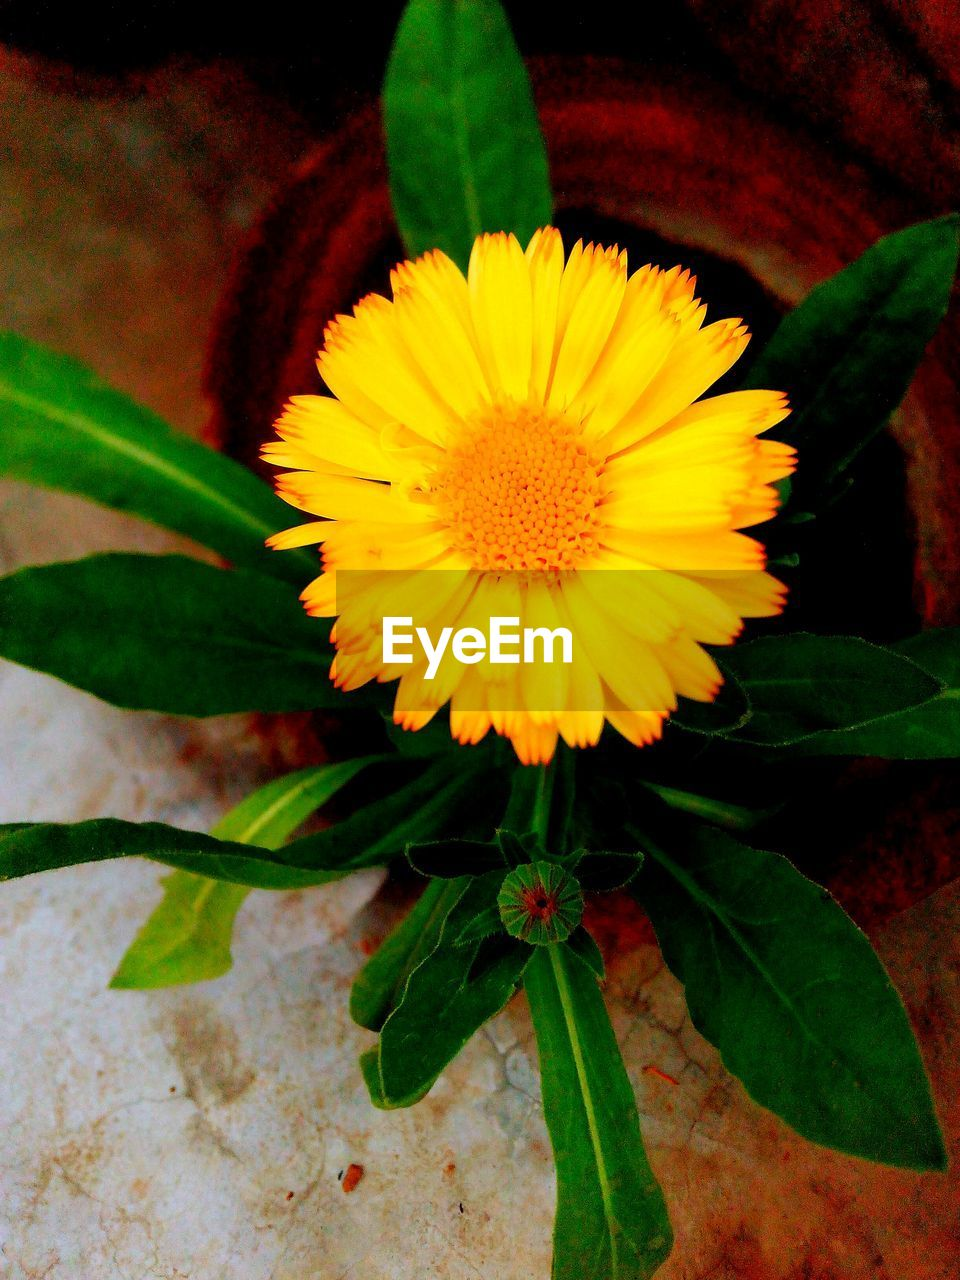 flower, petal, fragility, yellow, beauty in nature, growth, flower head, leaf, freshness, nature, plant, green color, no people, pollen, close-up, outdoors, day, sunflower, springtime, blooming